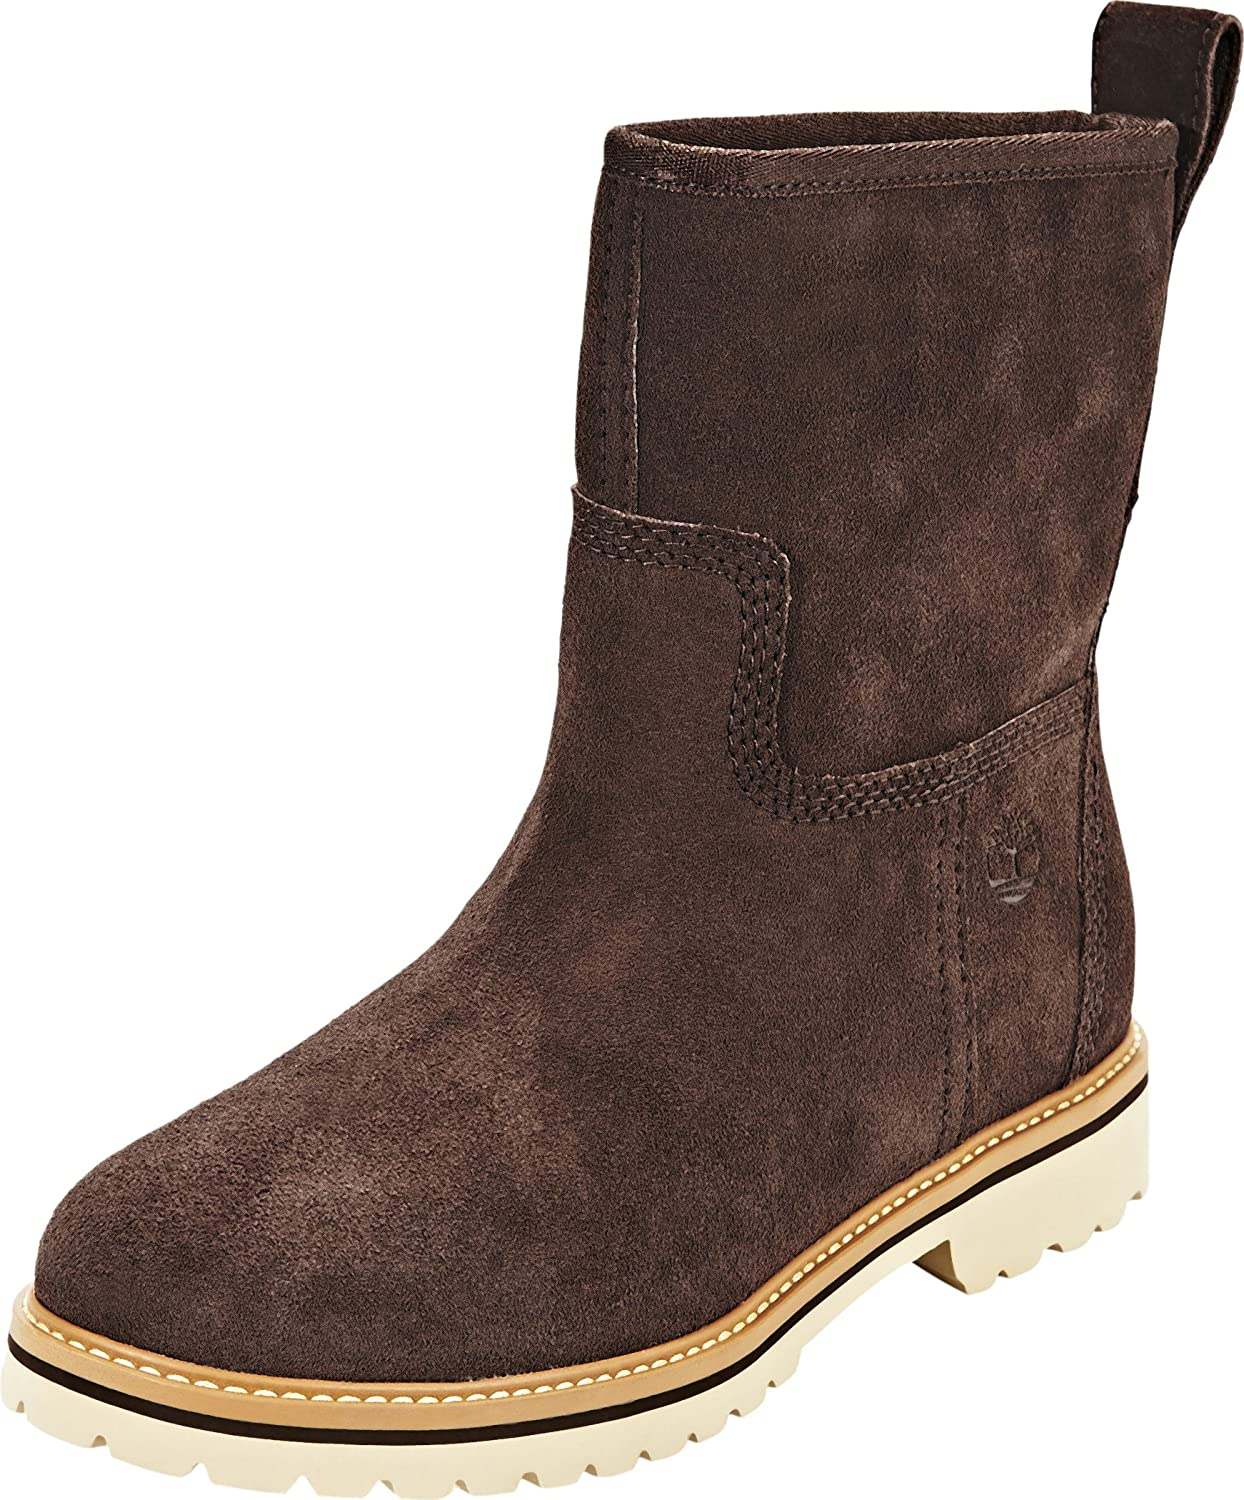 Women's Boots | Flat, Lace Up & Ankle Boots | Timberland